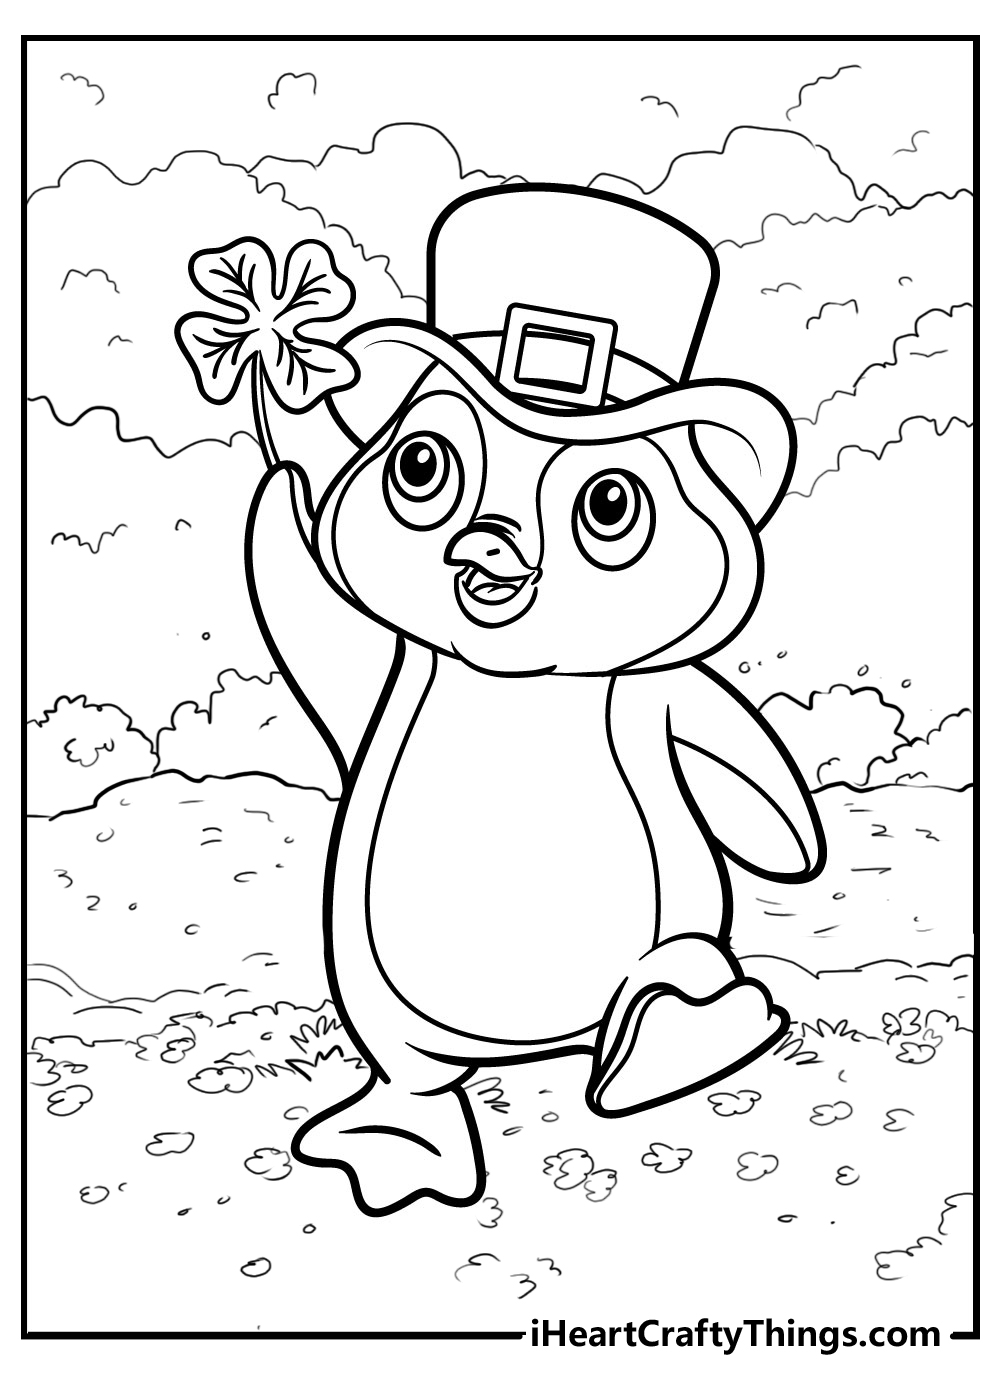 st patrick's penguin coloring pages free download